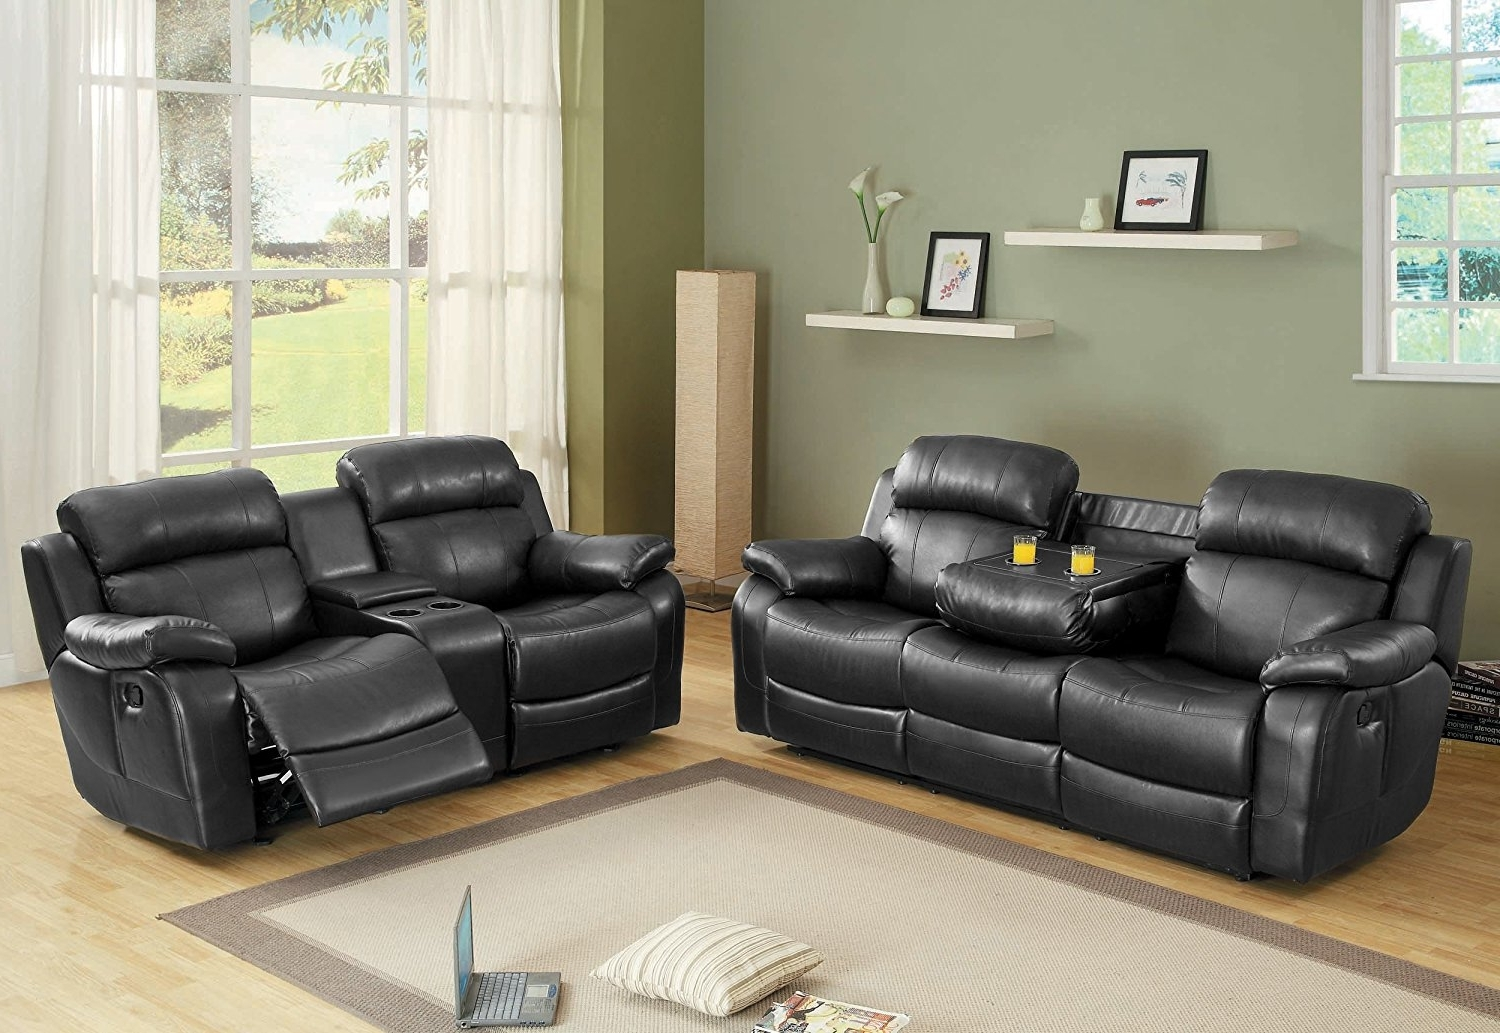 Sofas With Consoles Regarding Trendy Amazon: Homelegance Marille Reclining Sofa W/ Center Console (View 6 of 15)